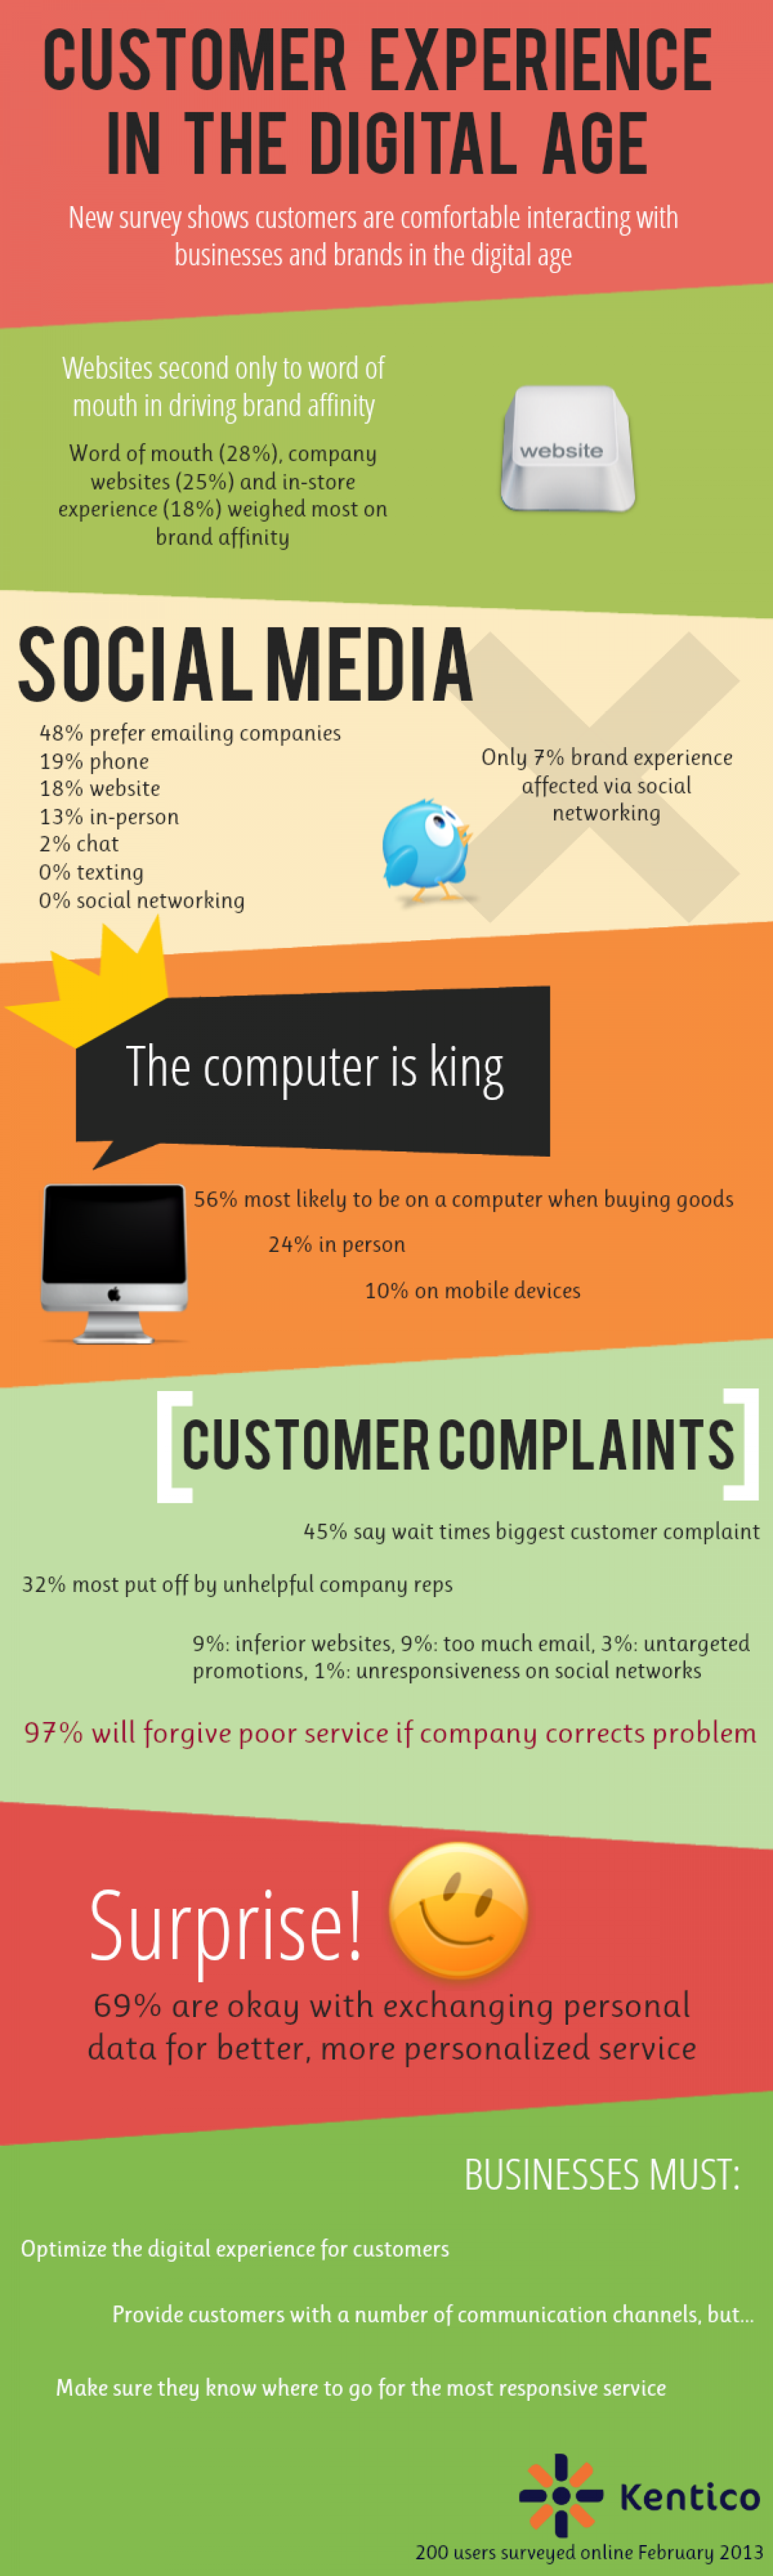 Customer Experience in the Digital Age Infographic